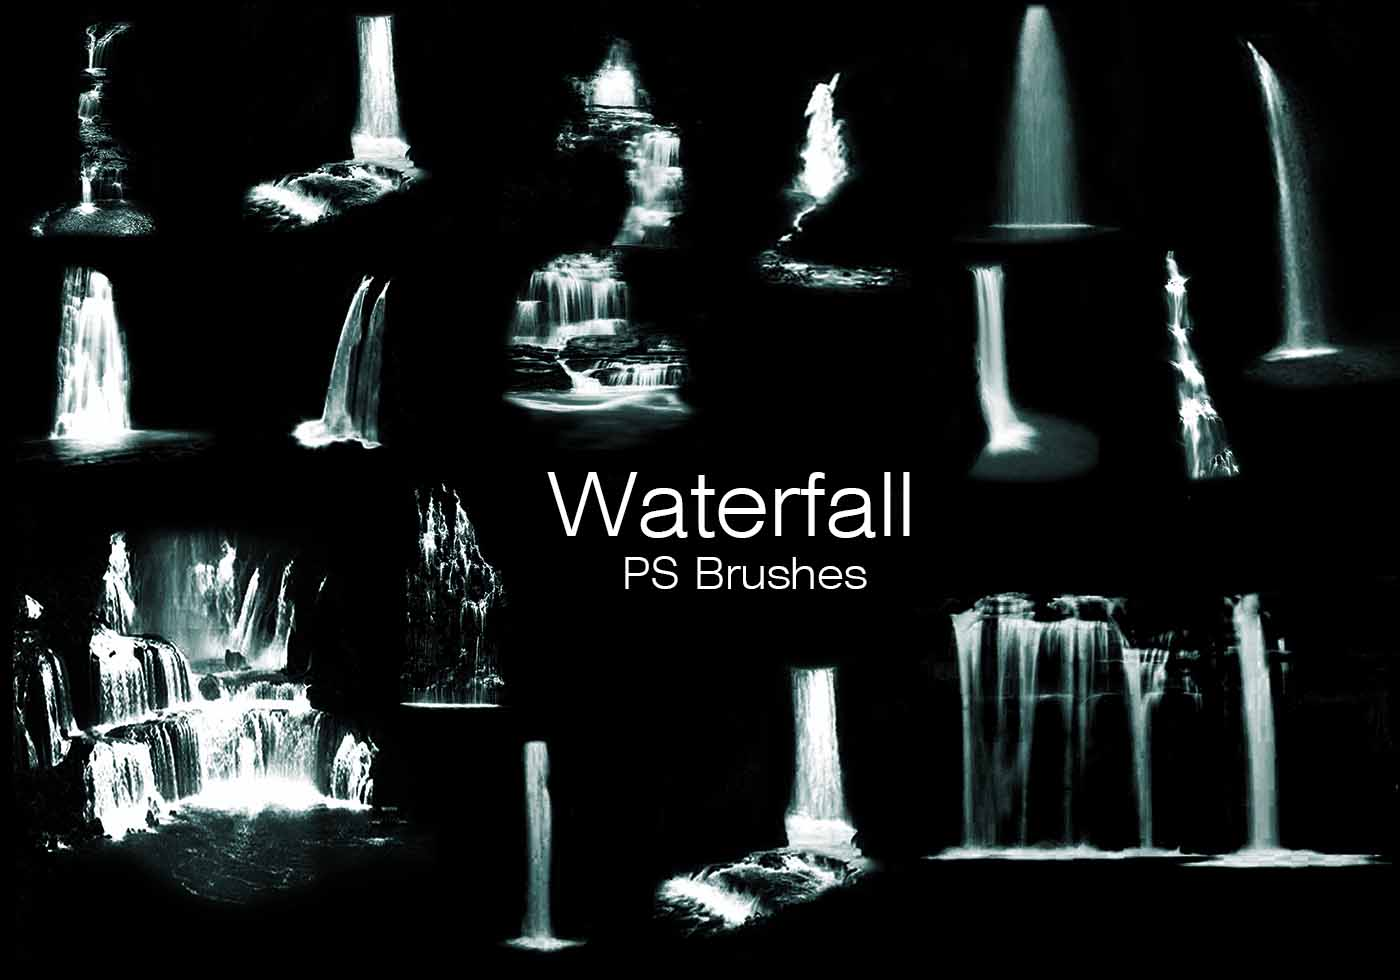 20 waterfall ps brushes abr vol9 free photoshop